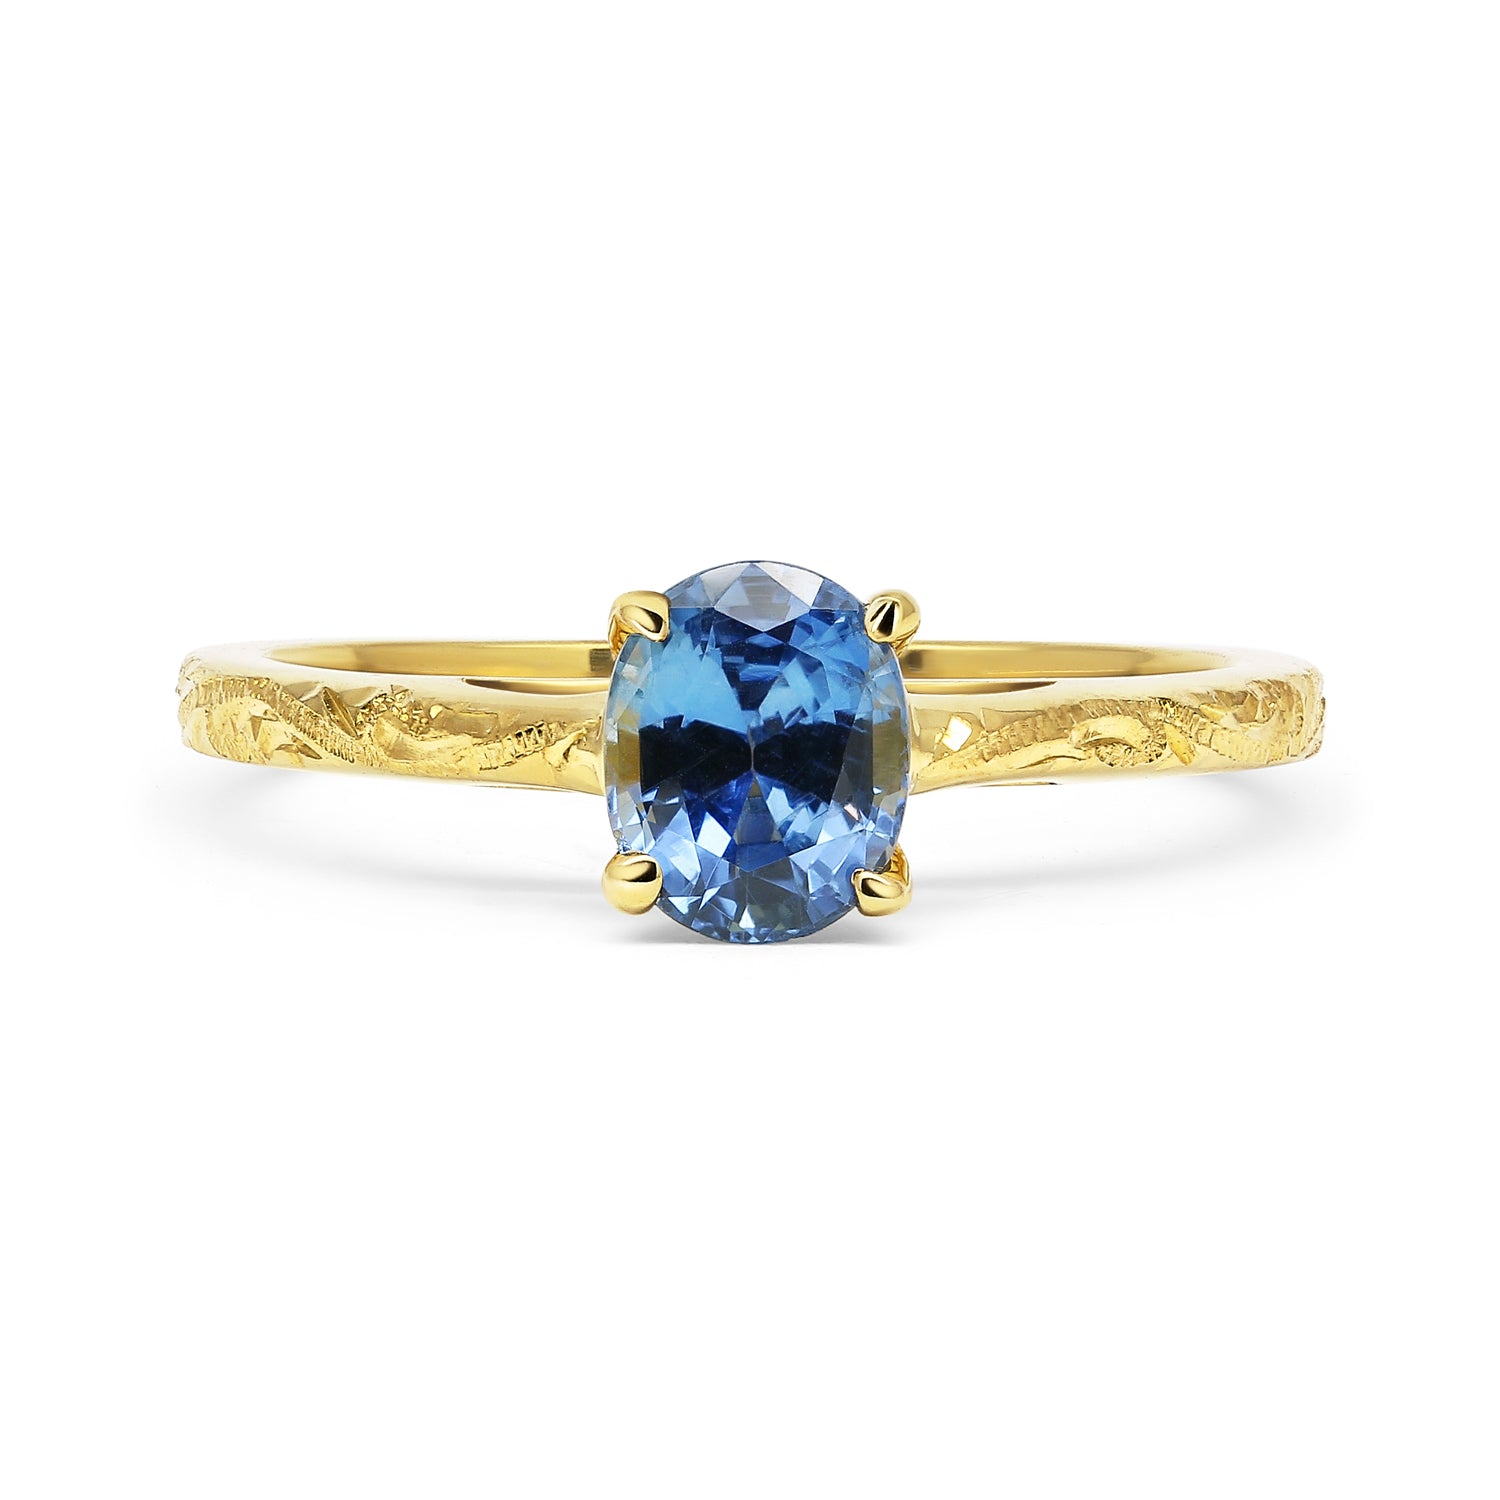 Fancy Athena Oval Sapphire Engagement Ring, 18ct Fairtrade Gold